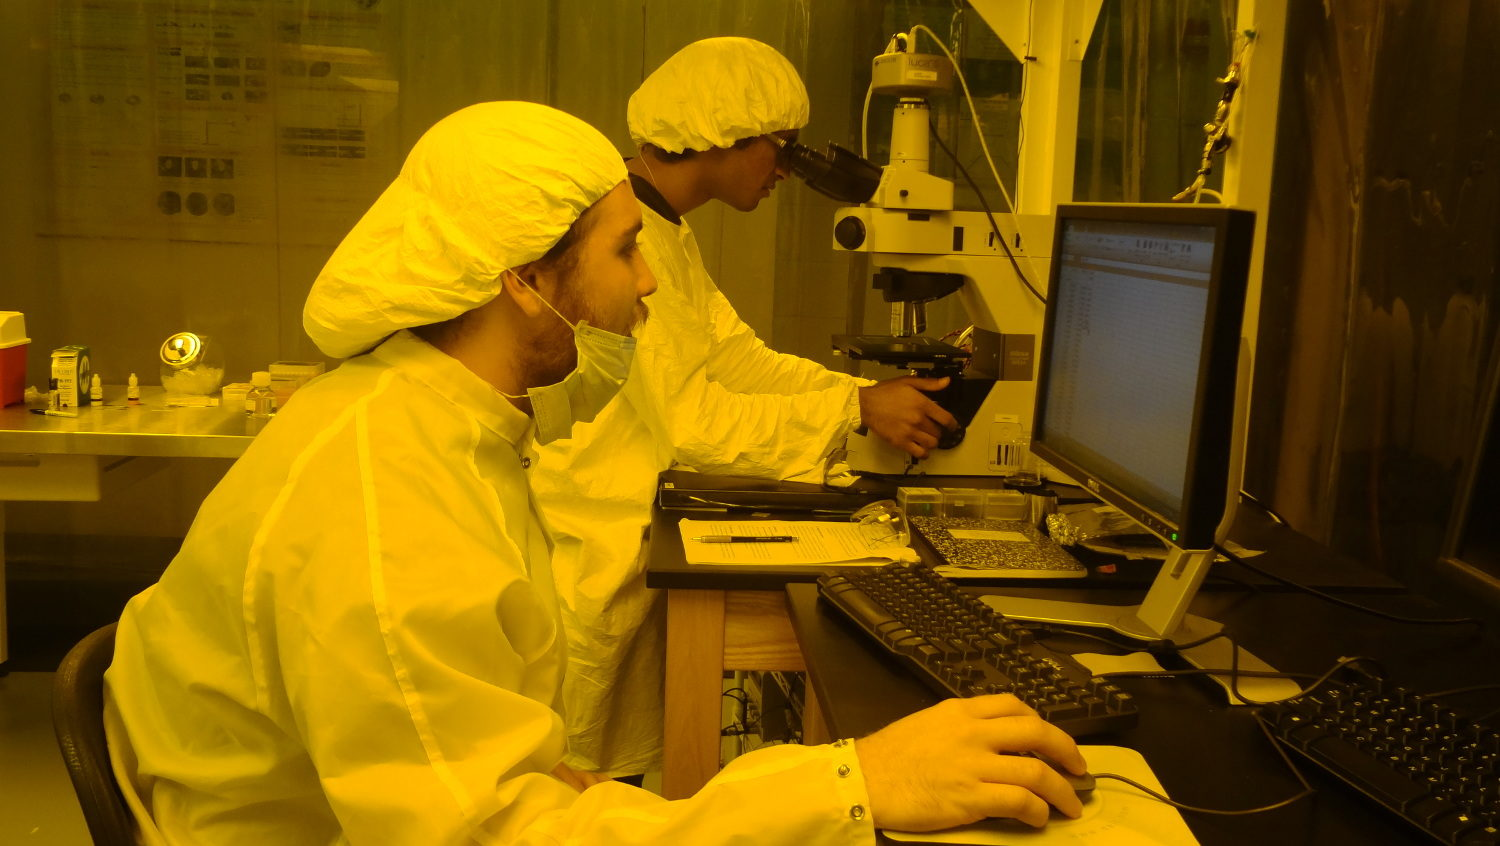 Undergraduate students in Cleanroom